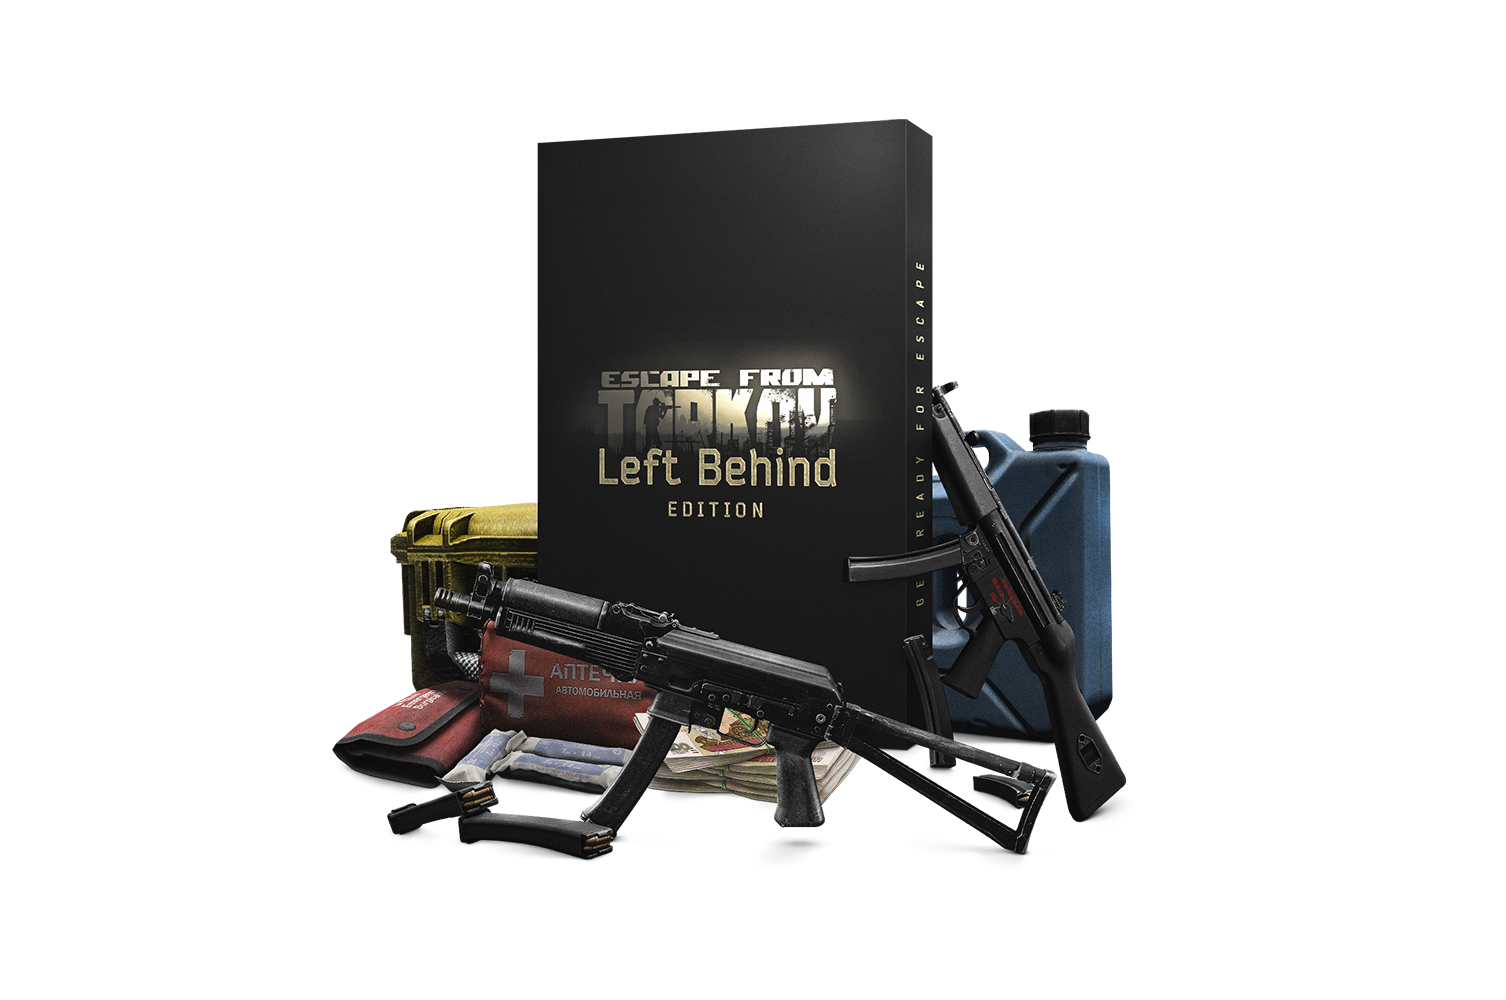 Left Behind Edition